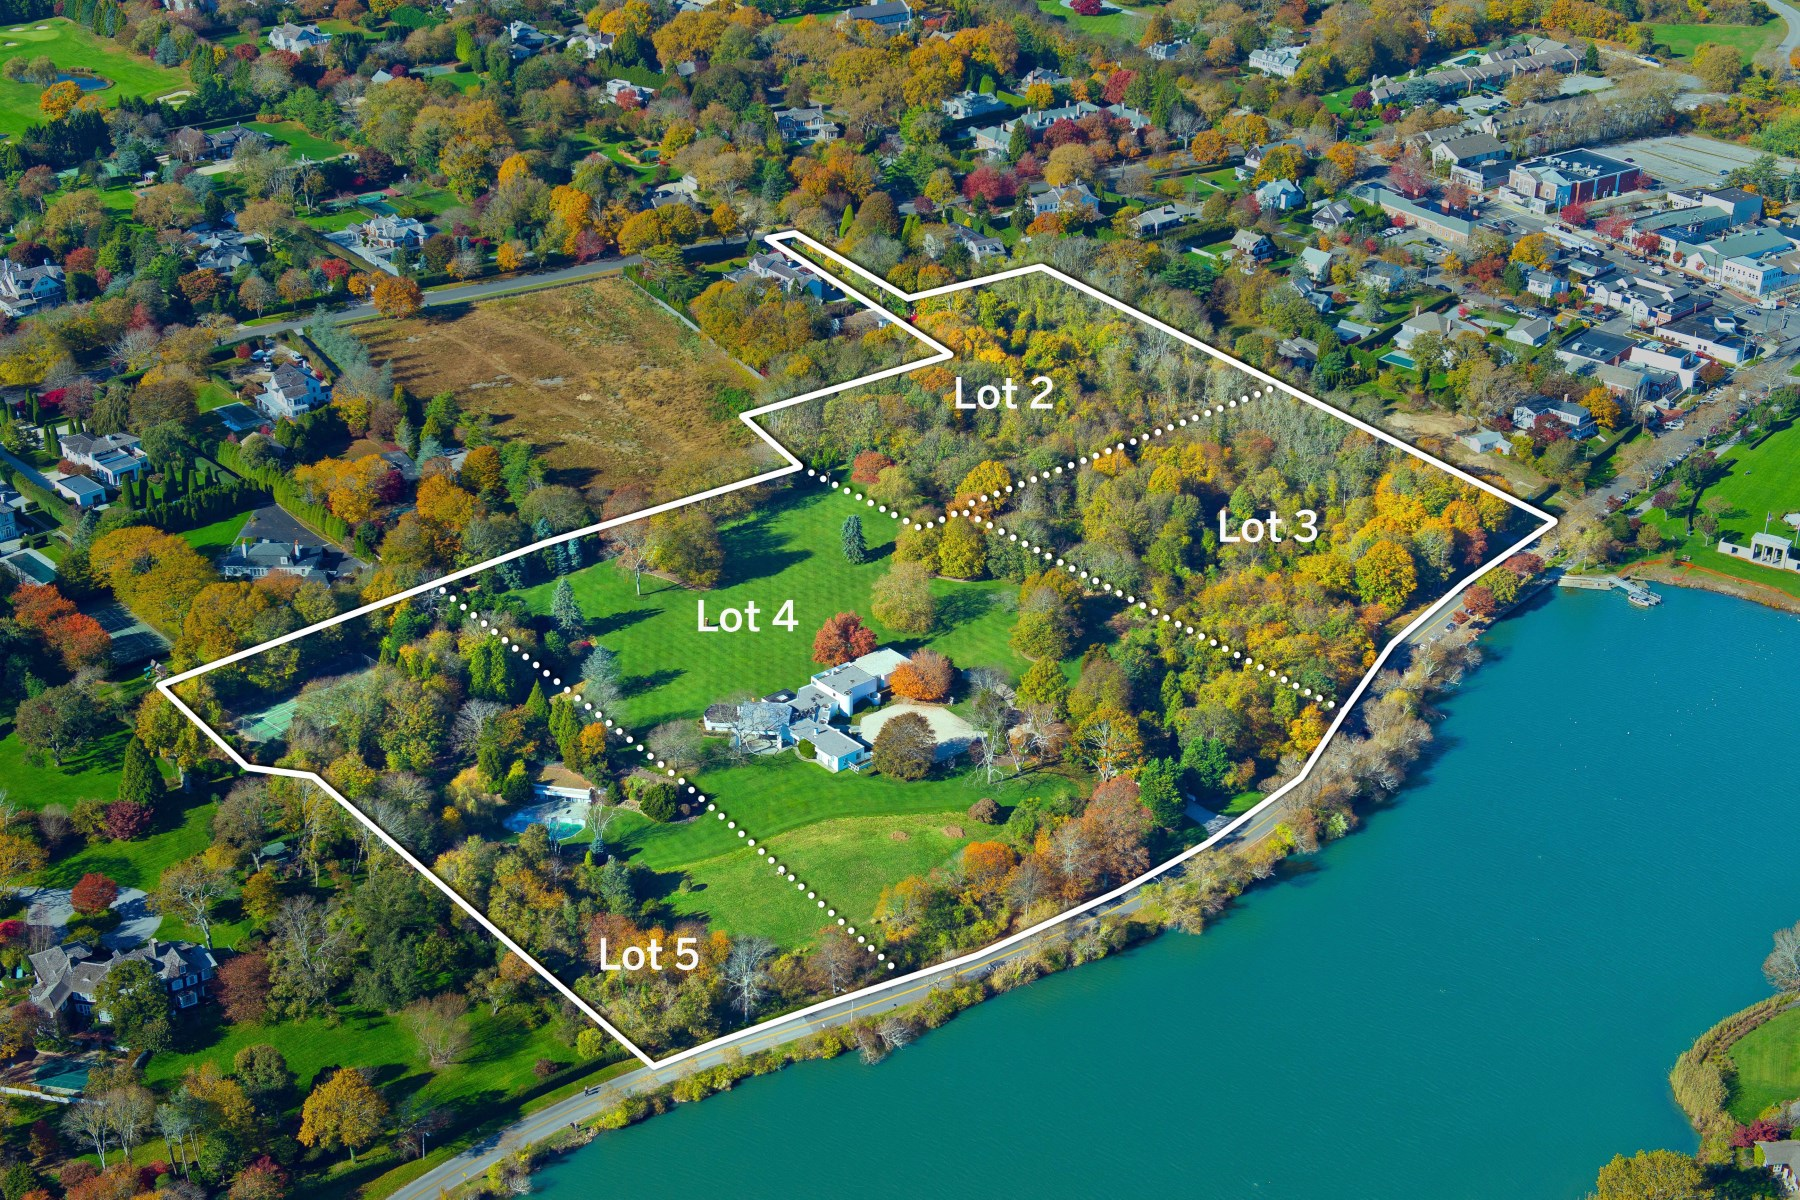 Частный односемейный дом для того Продажа на Overlooking Lake Agawam 111, 137, 153 Pond Lane & 52 First Neck Lane 4 properties combined Southampton Estate Section, Southampton, Нью-Йорк, 11968 Соединенные Штаты